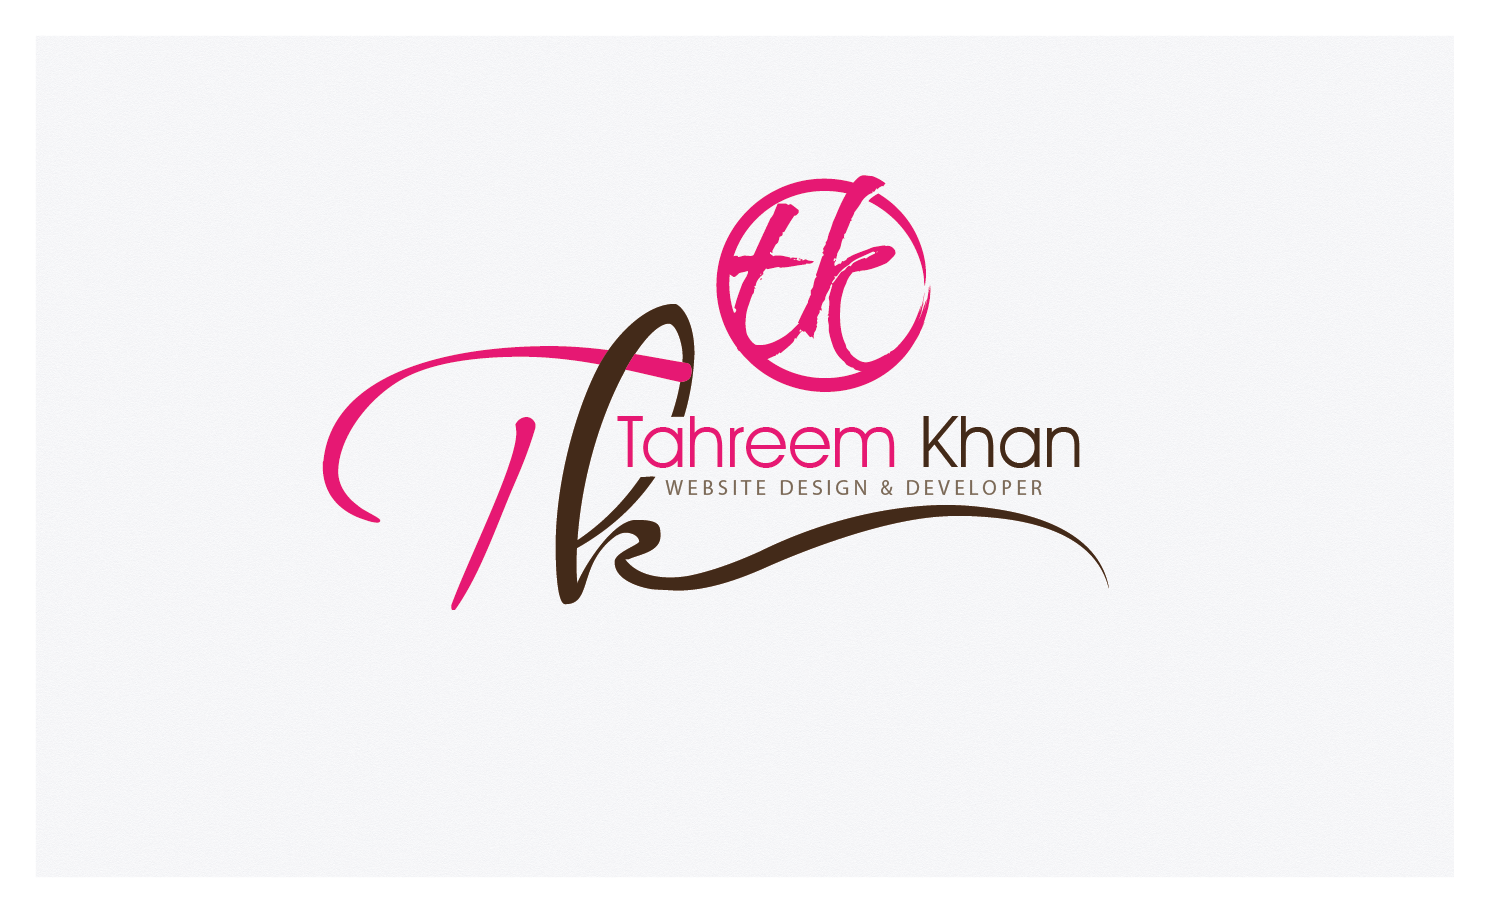 New logo wanted for Tahreem Khan